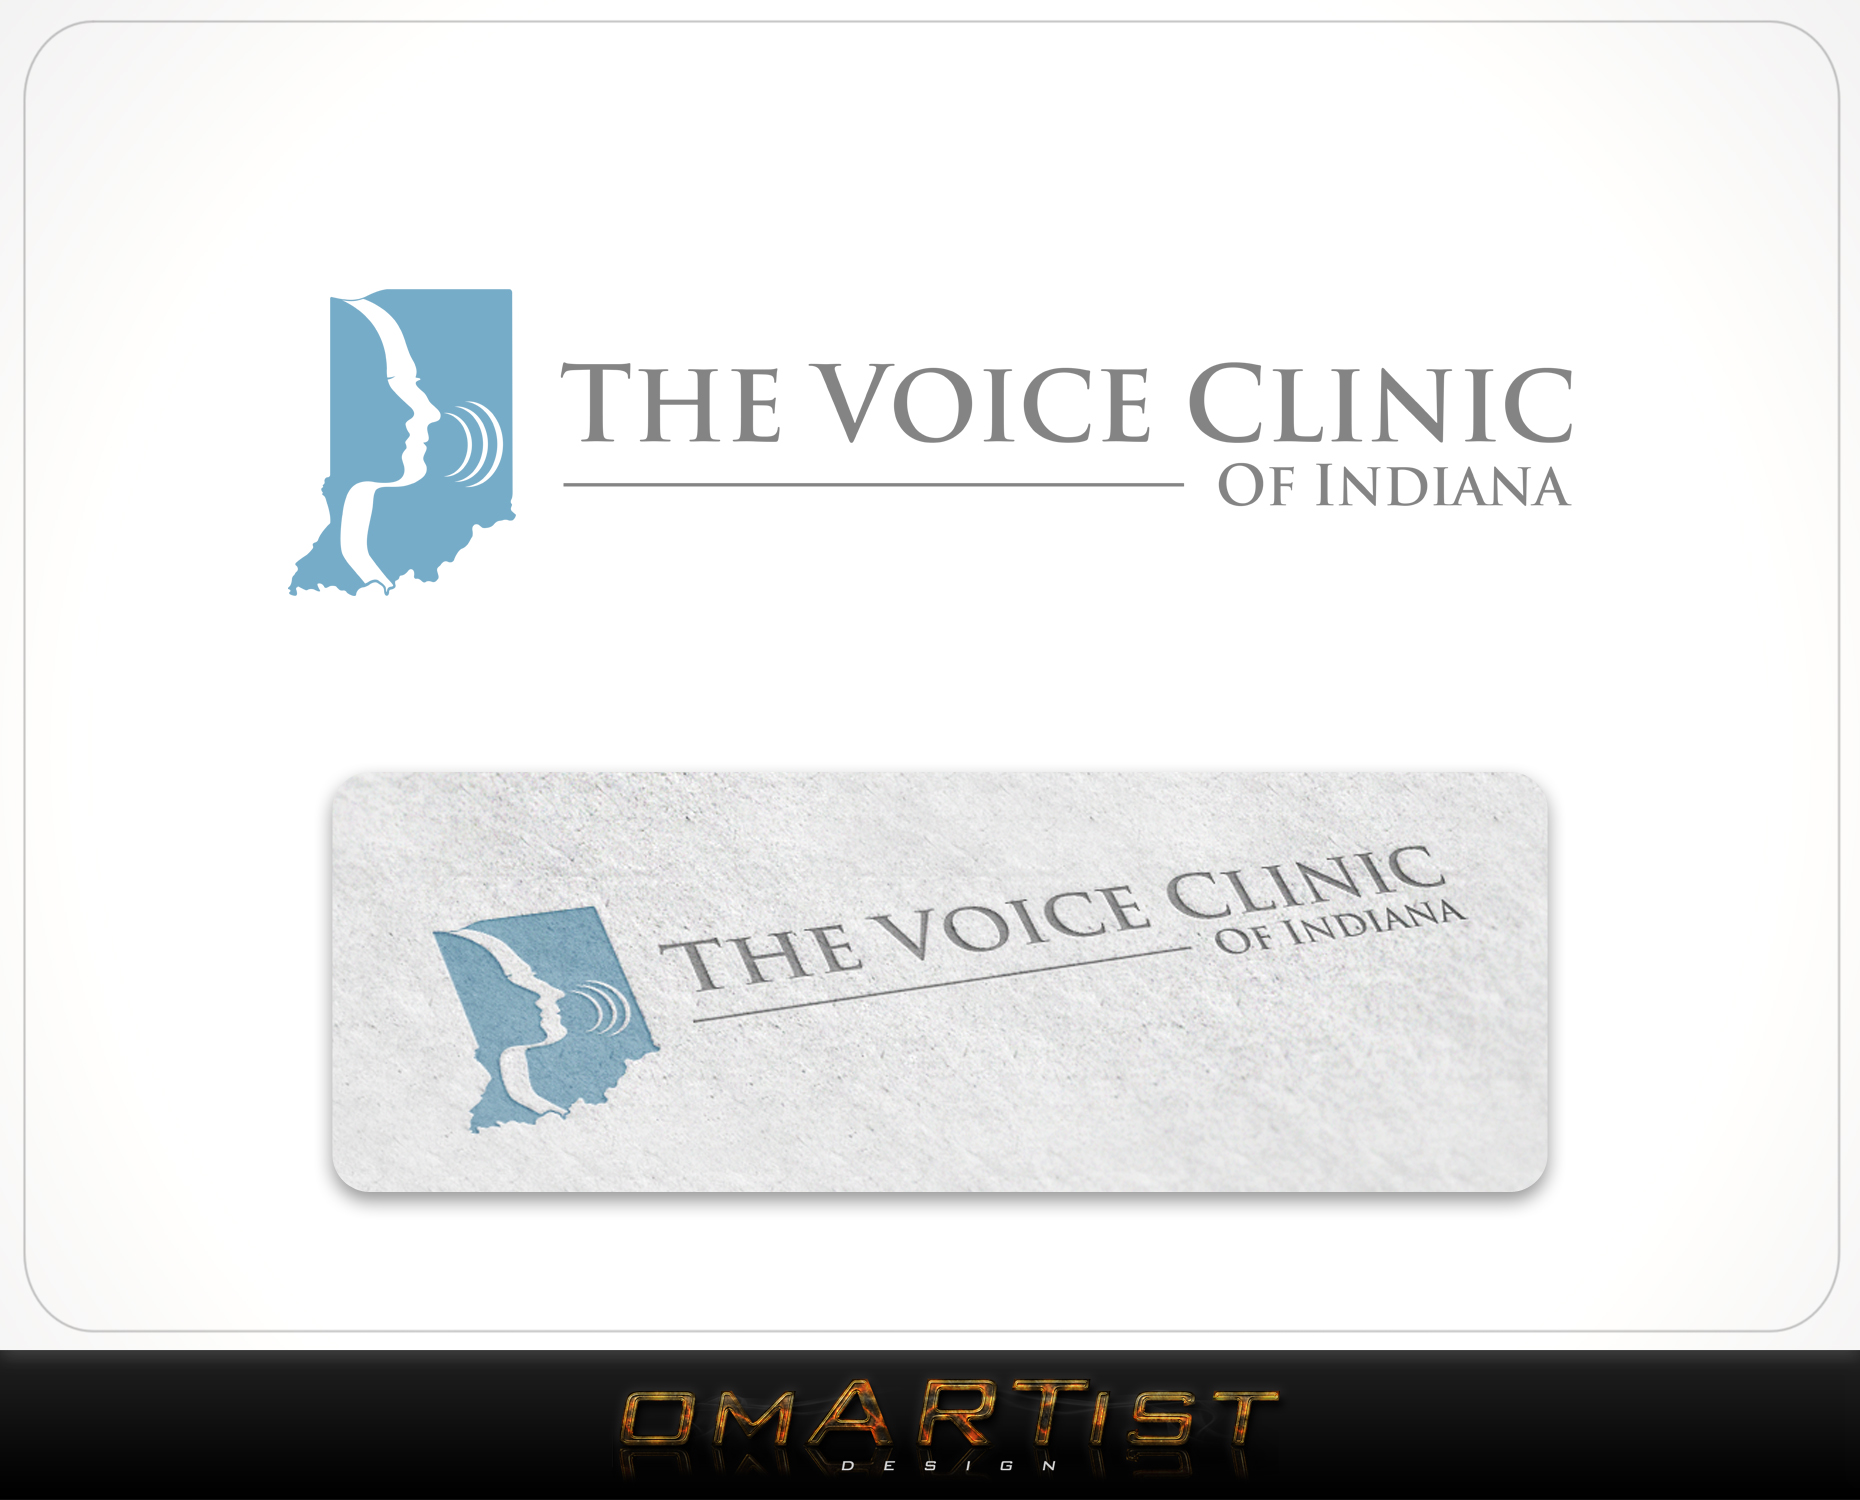 Logo Design by omARTist - Entry No. 46 in the Logo Design Contest Logo Design for The Voice Clinic of Indiana.